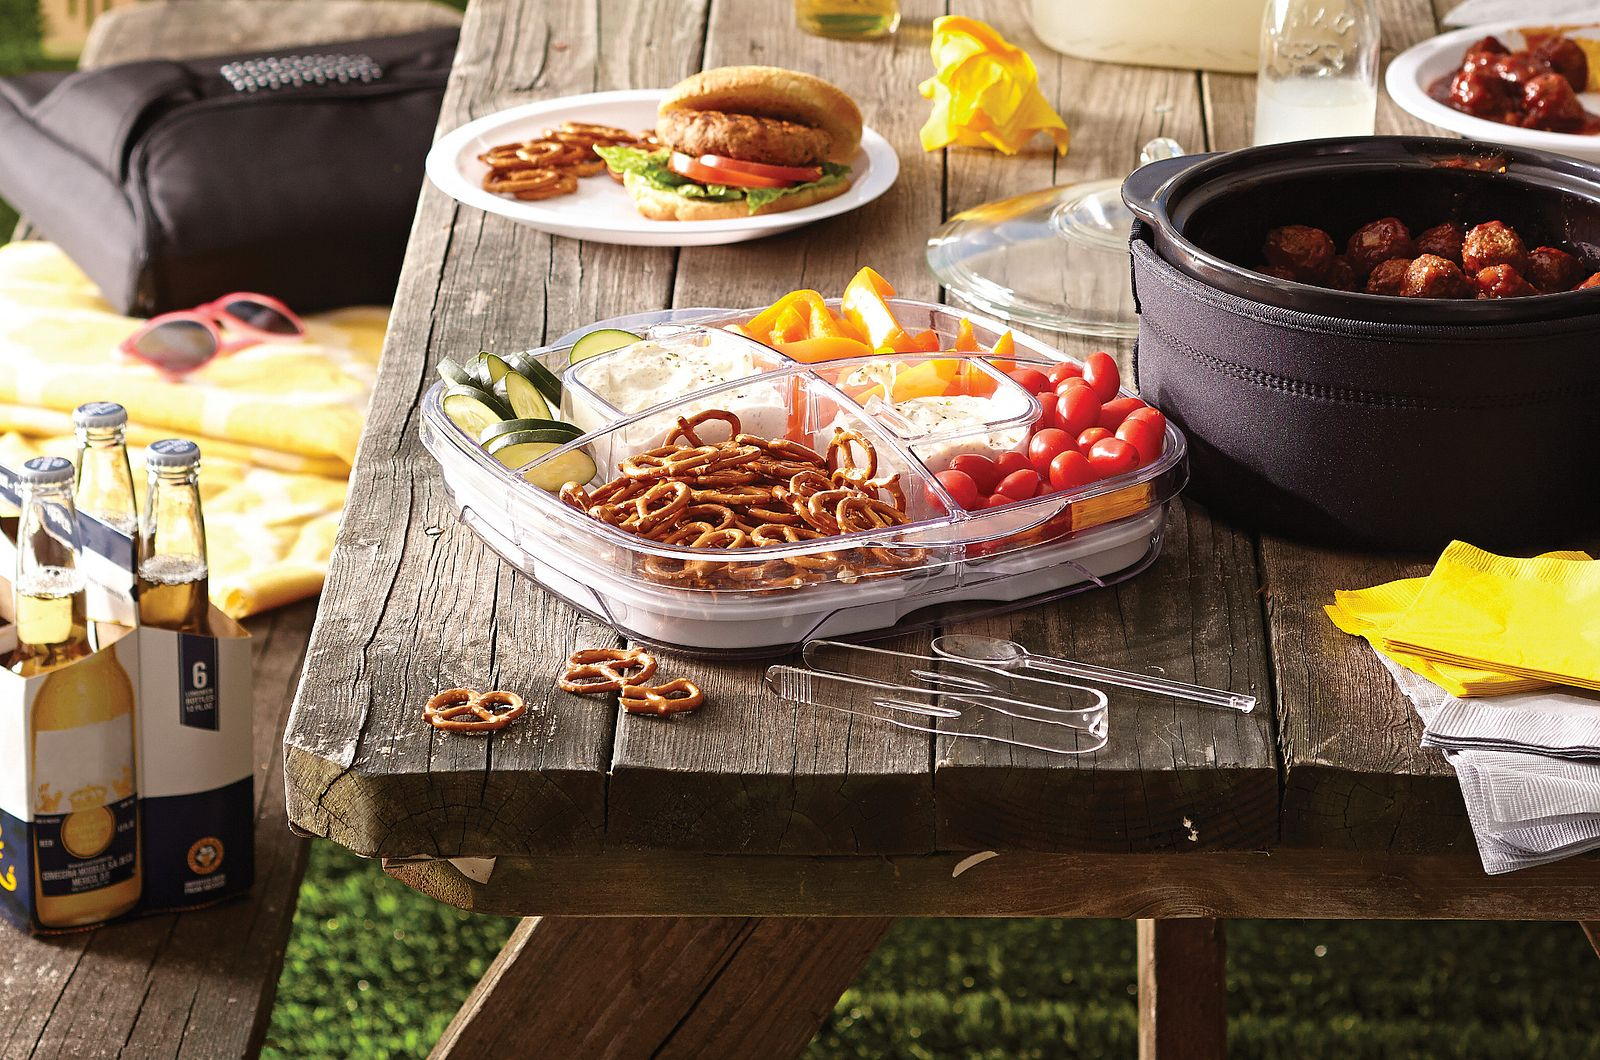 7 Steps for Throwing an Awesome Tailgate Party